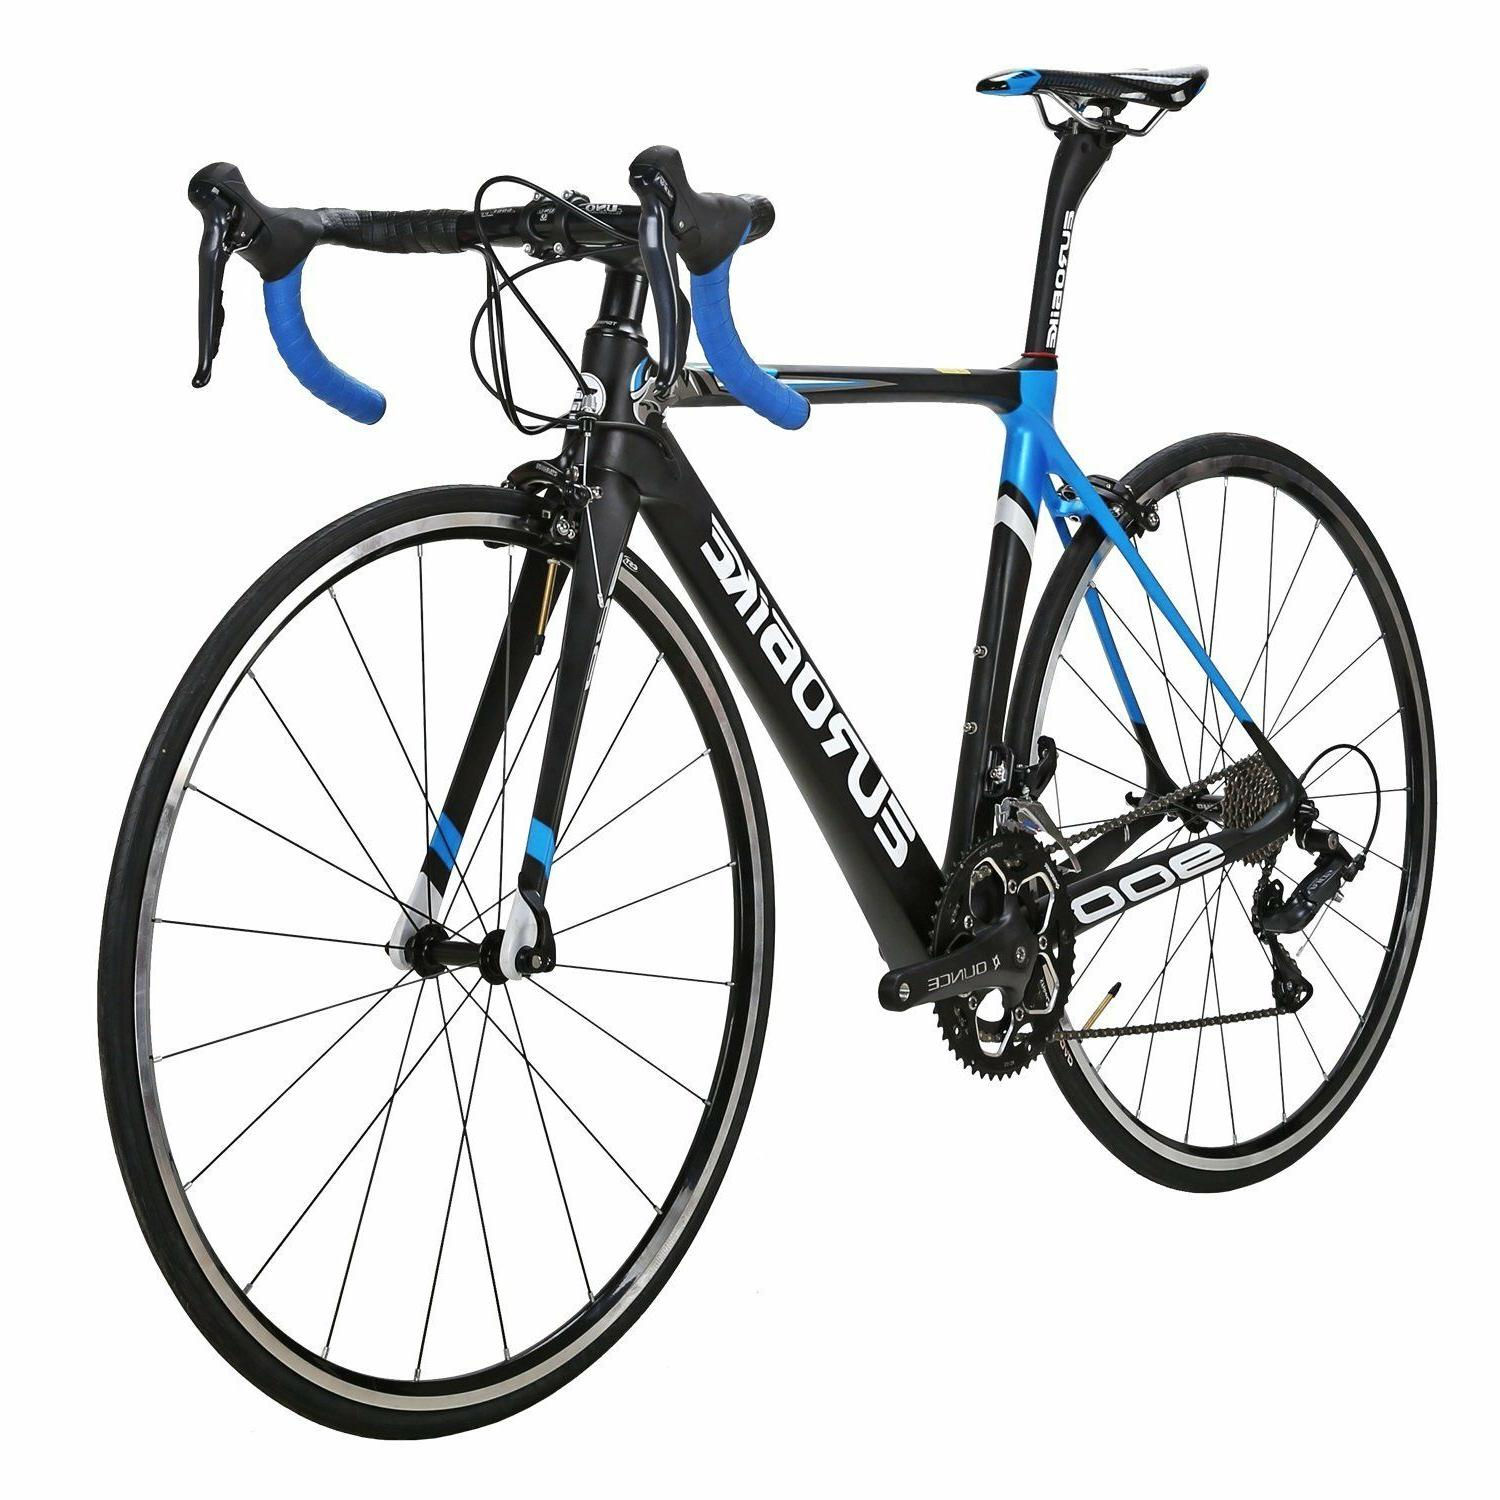 eurobike eu900 carbon frame road bike 18